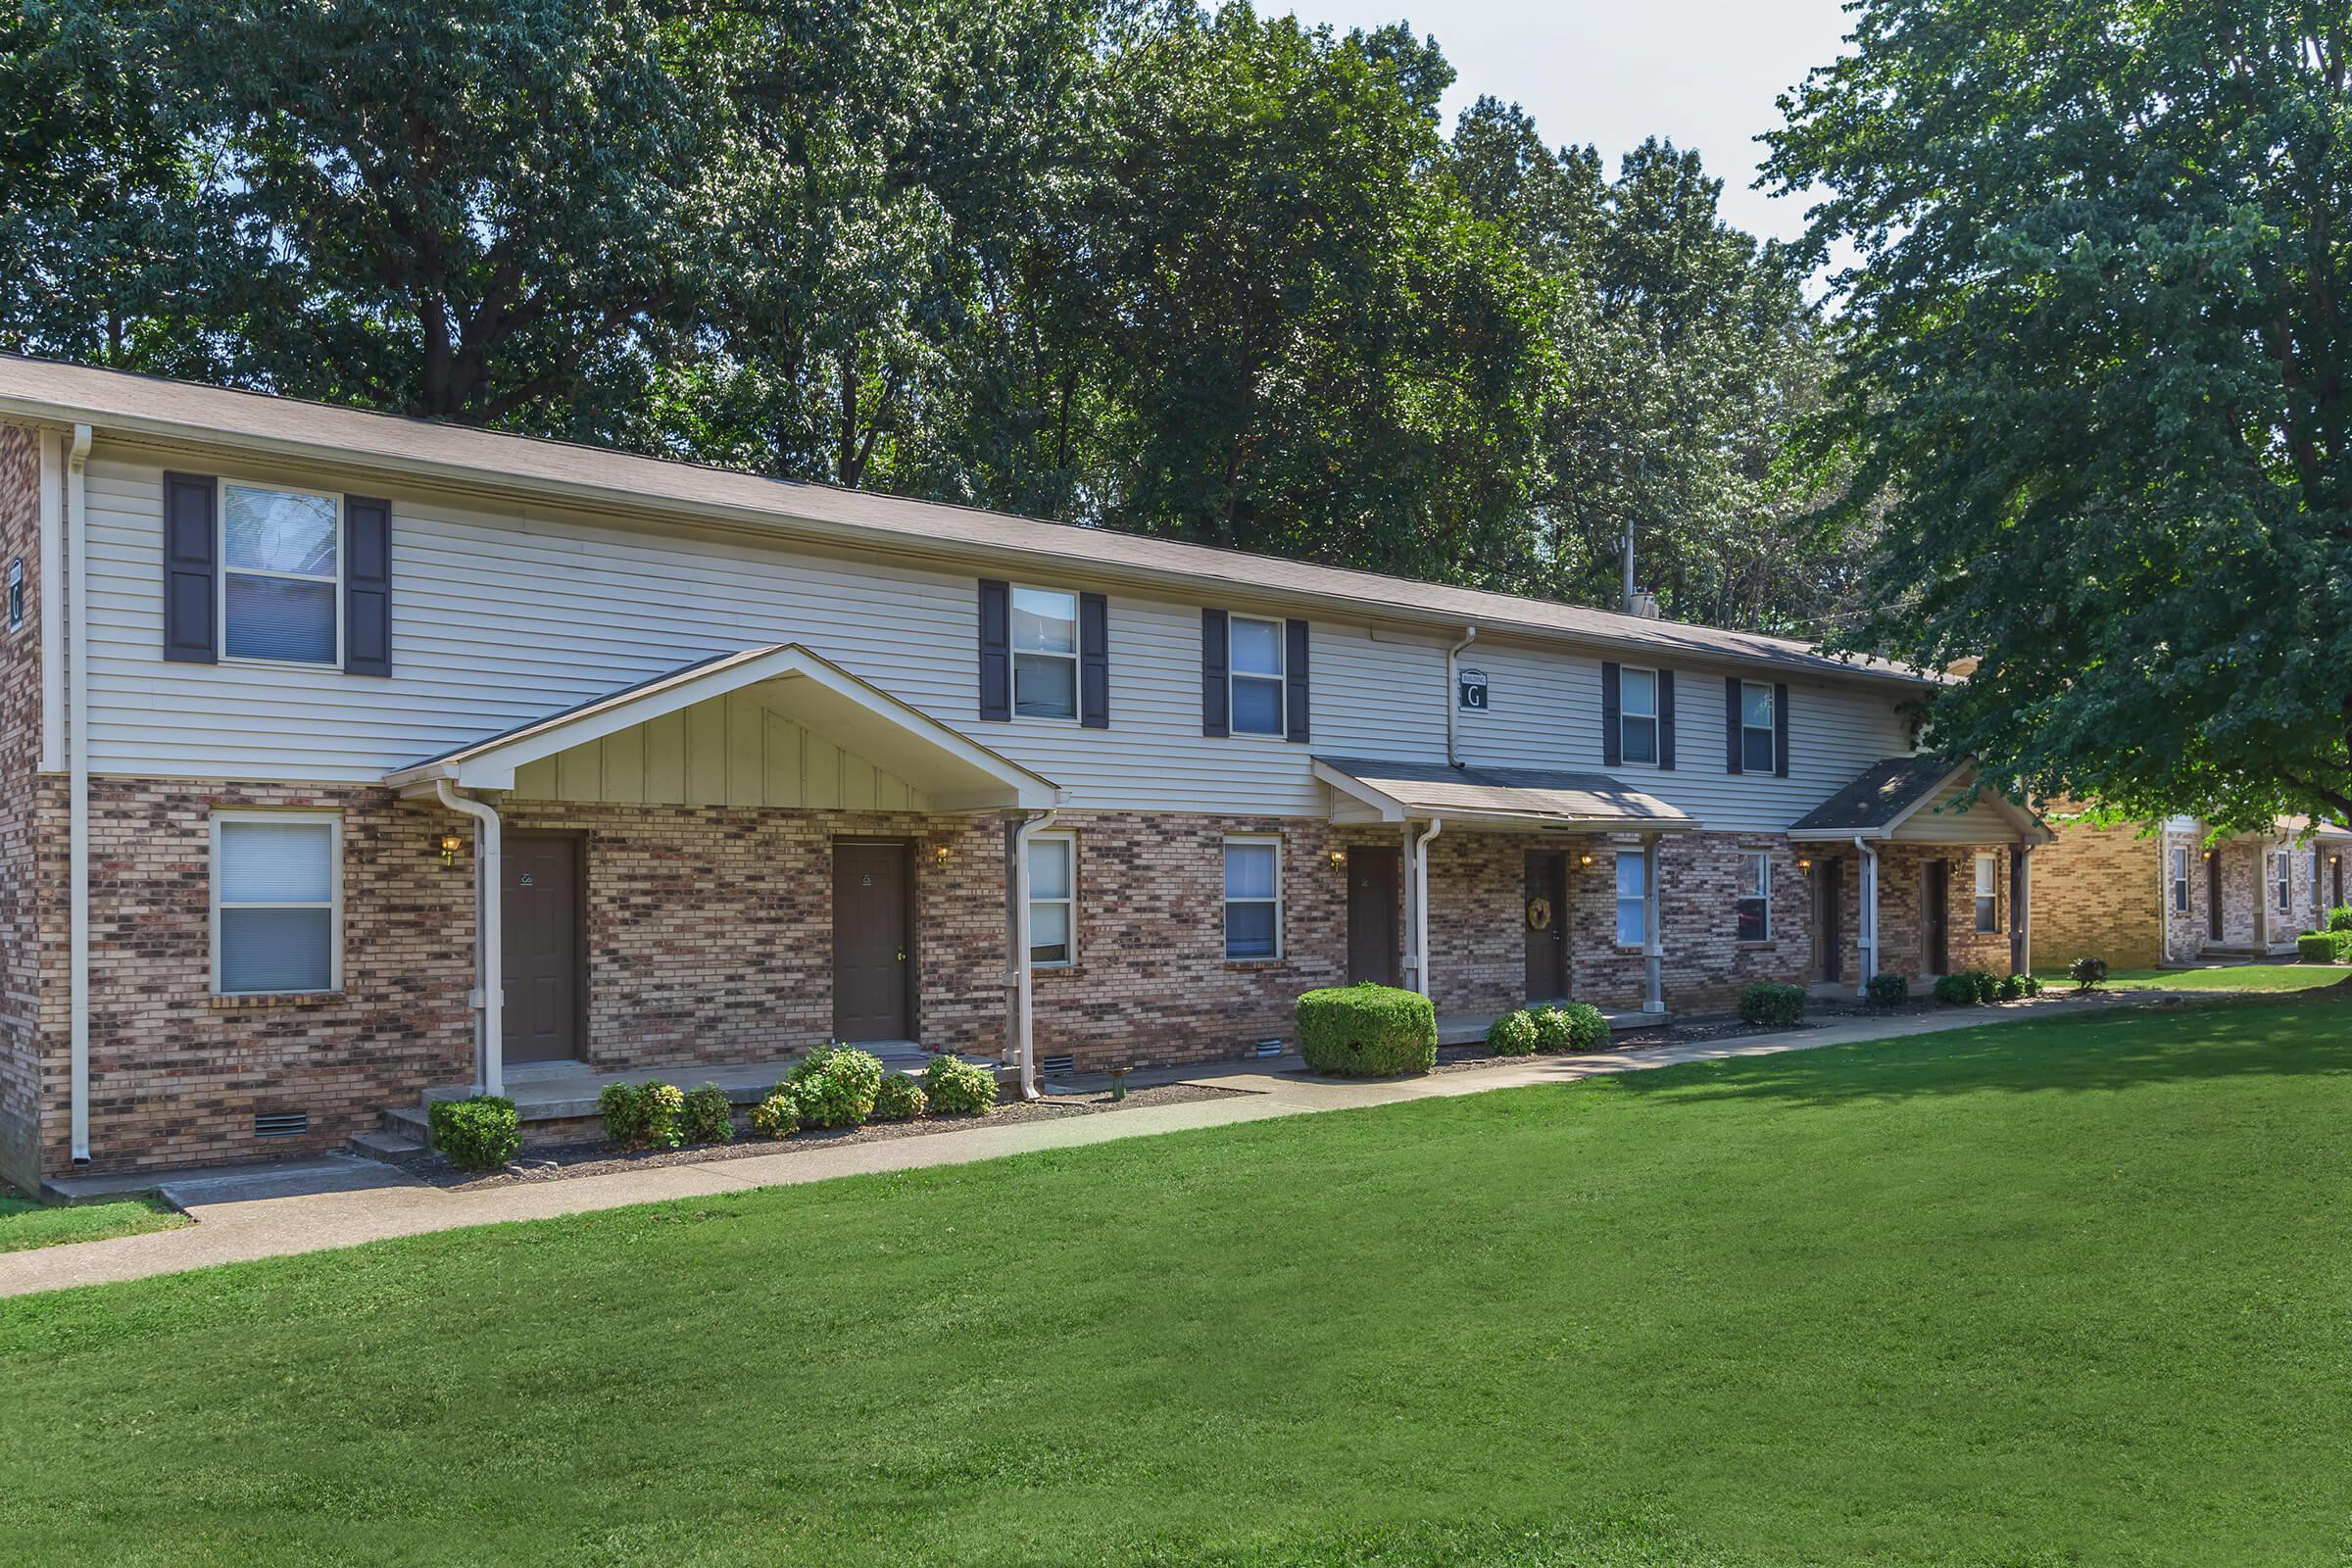 Apartments Near Austin Peay The Residences at 1671 Campbell for Austin Peay State University Students in Clarksville, TN